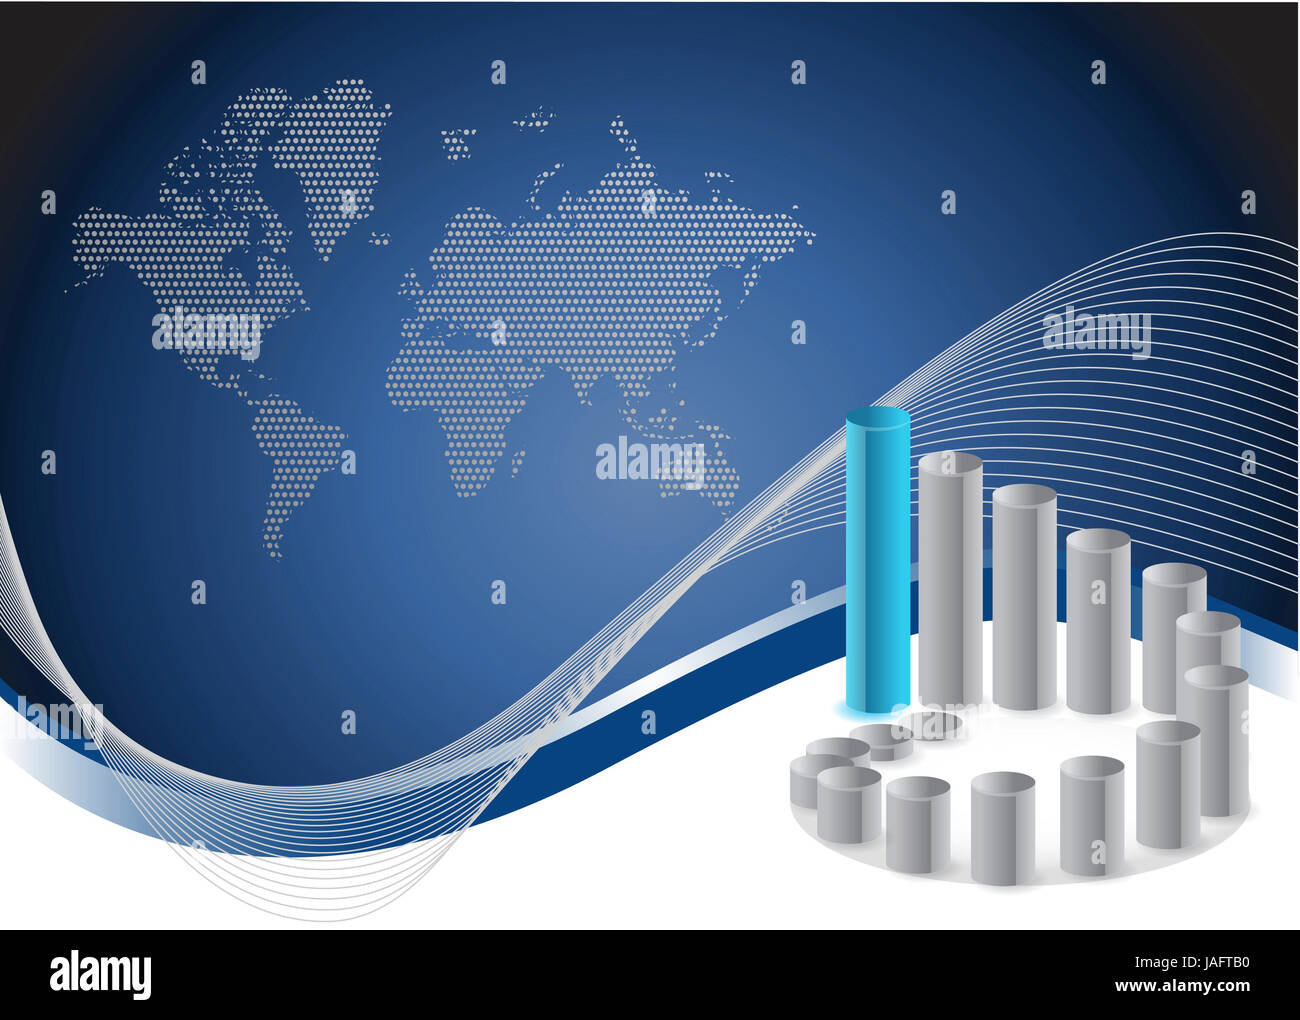 Stock Photo   background with creative bar graphs and map. background with creative bar graphs and map Stock Photo  Royalty